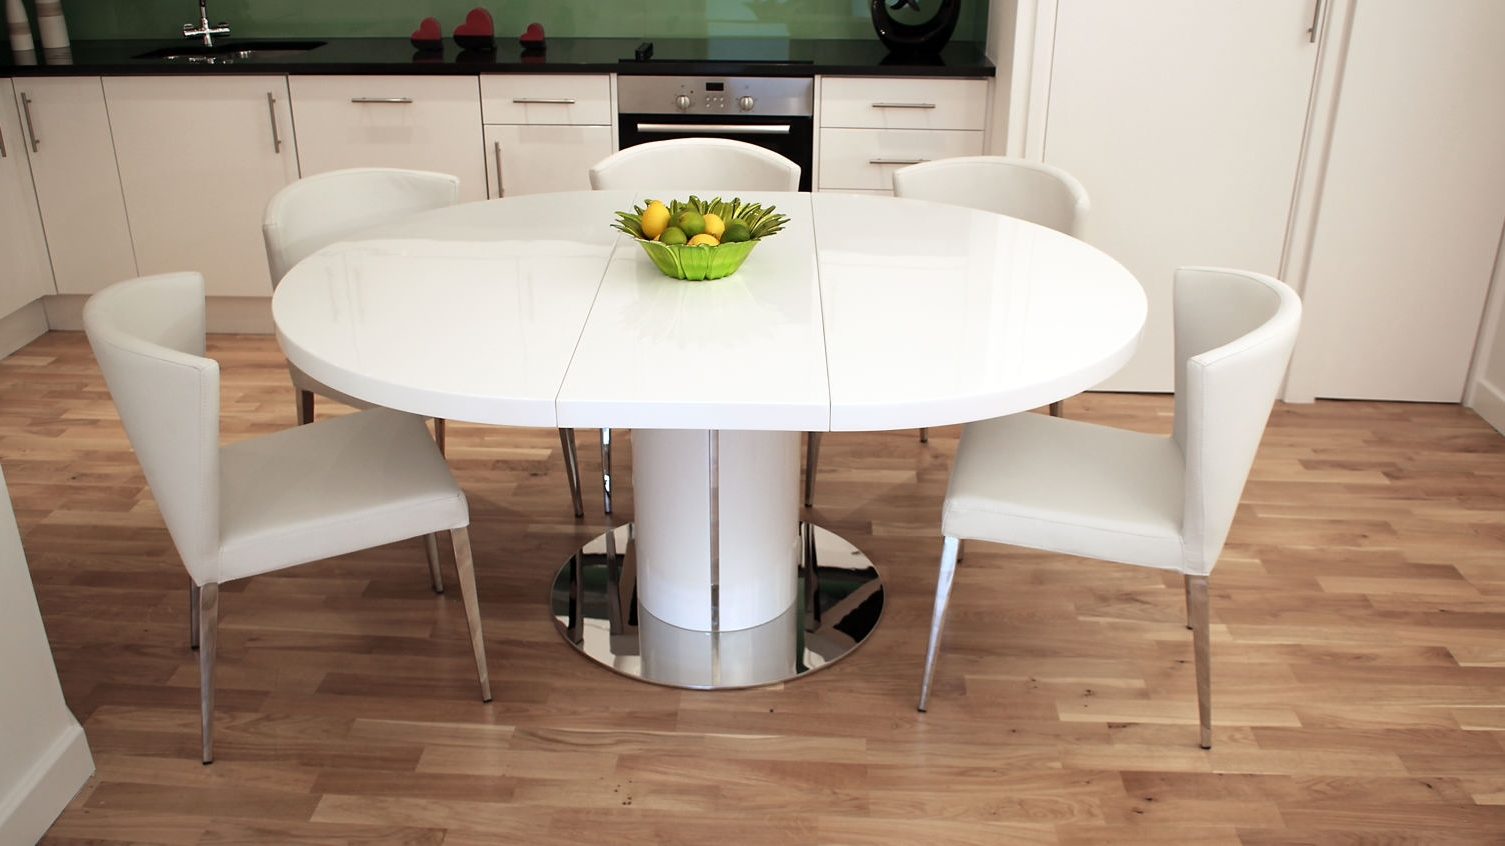 Preferred Diy Painting White Round Dining Table — The Home Redesign In Oval White High Gloss Dining Tables (Gallery 9 of 25)